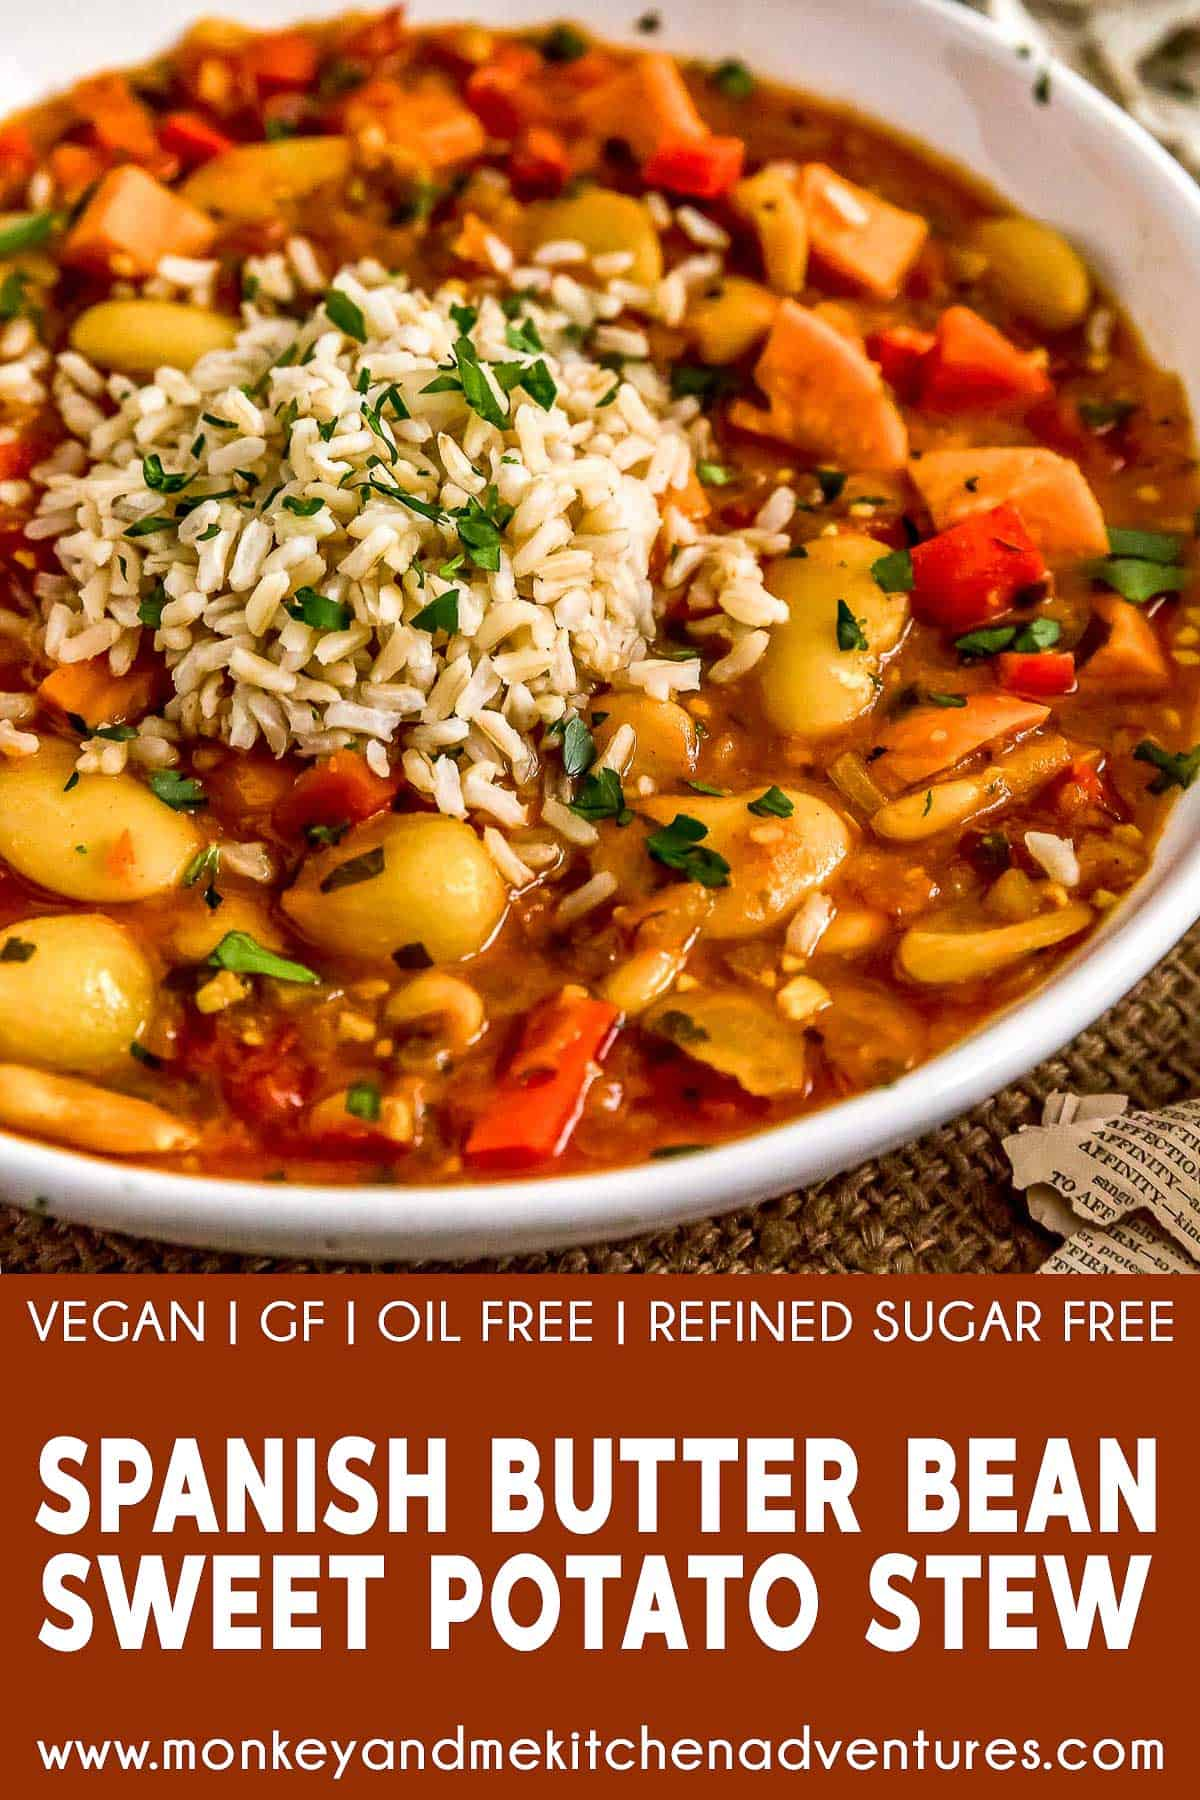 Spanish Butter Bean Sweet Potato Stew with text description